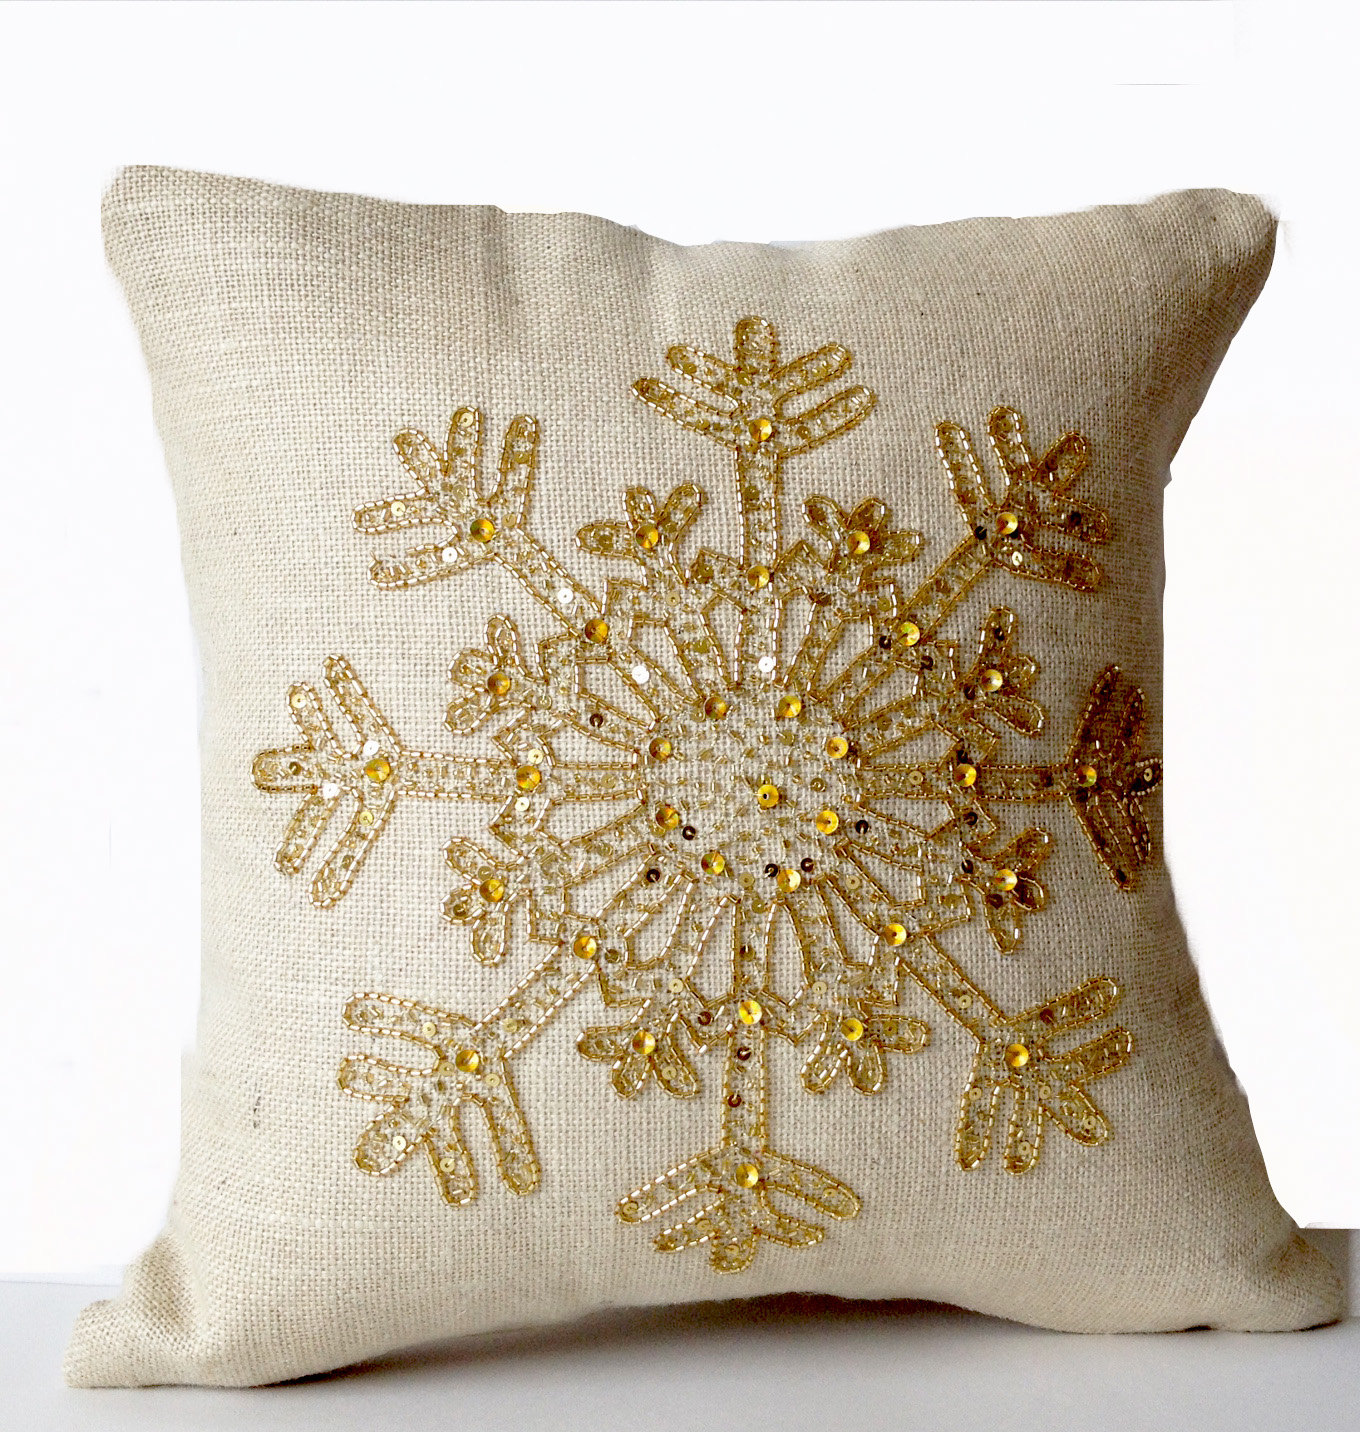 Memory Foam Throw Pillows | Gold Throw Pillows | Gold Sequin Throw Pillows